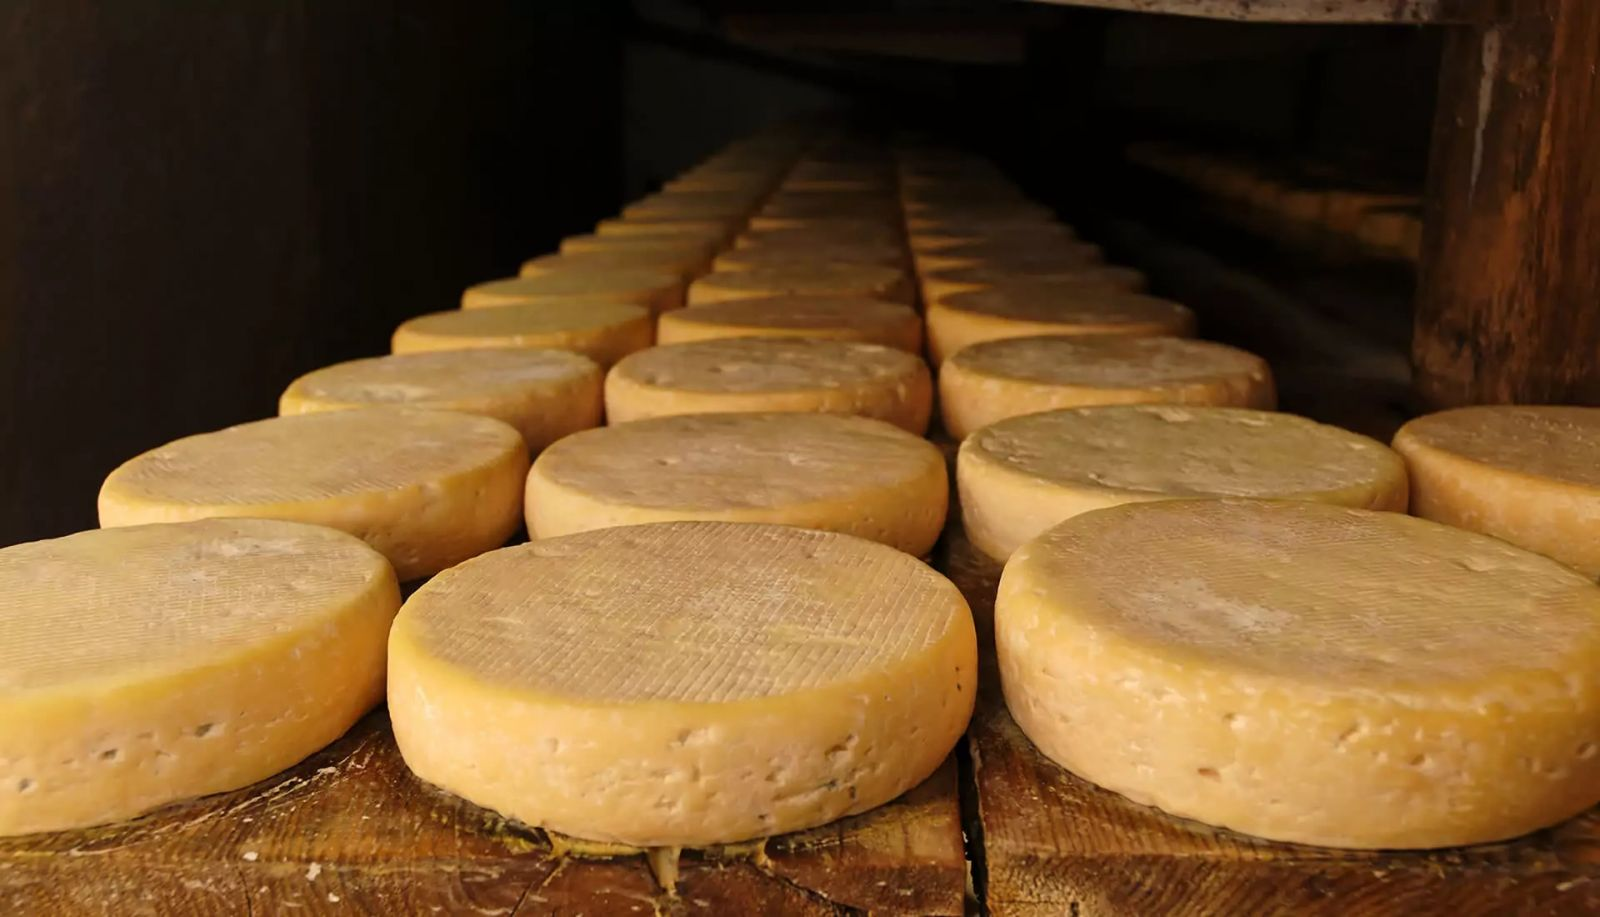 Cheese from Alsace